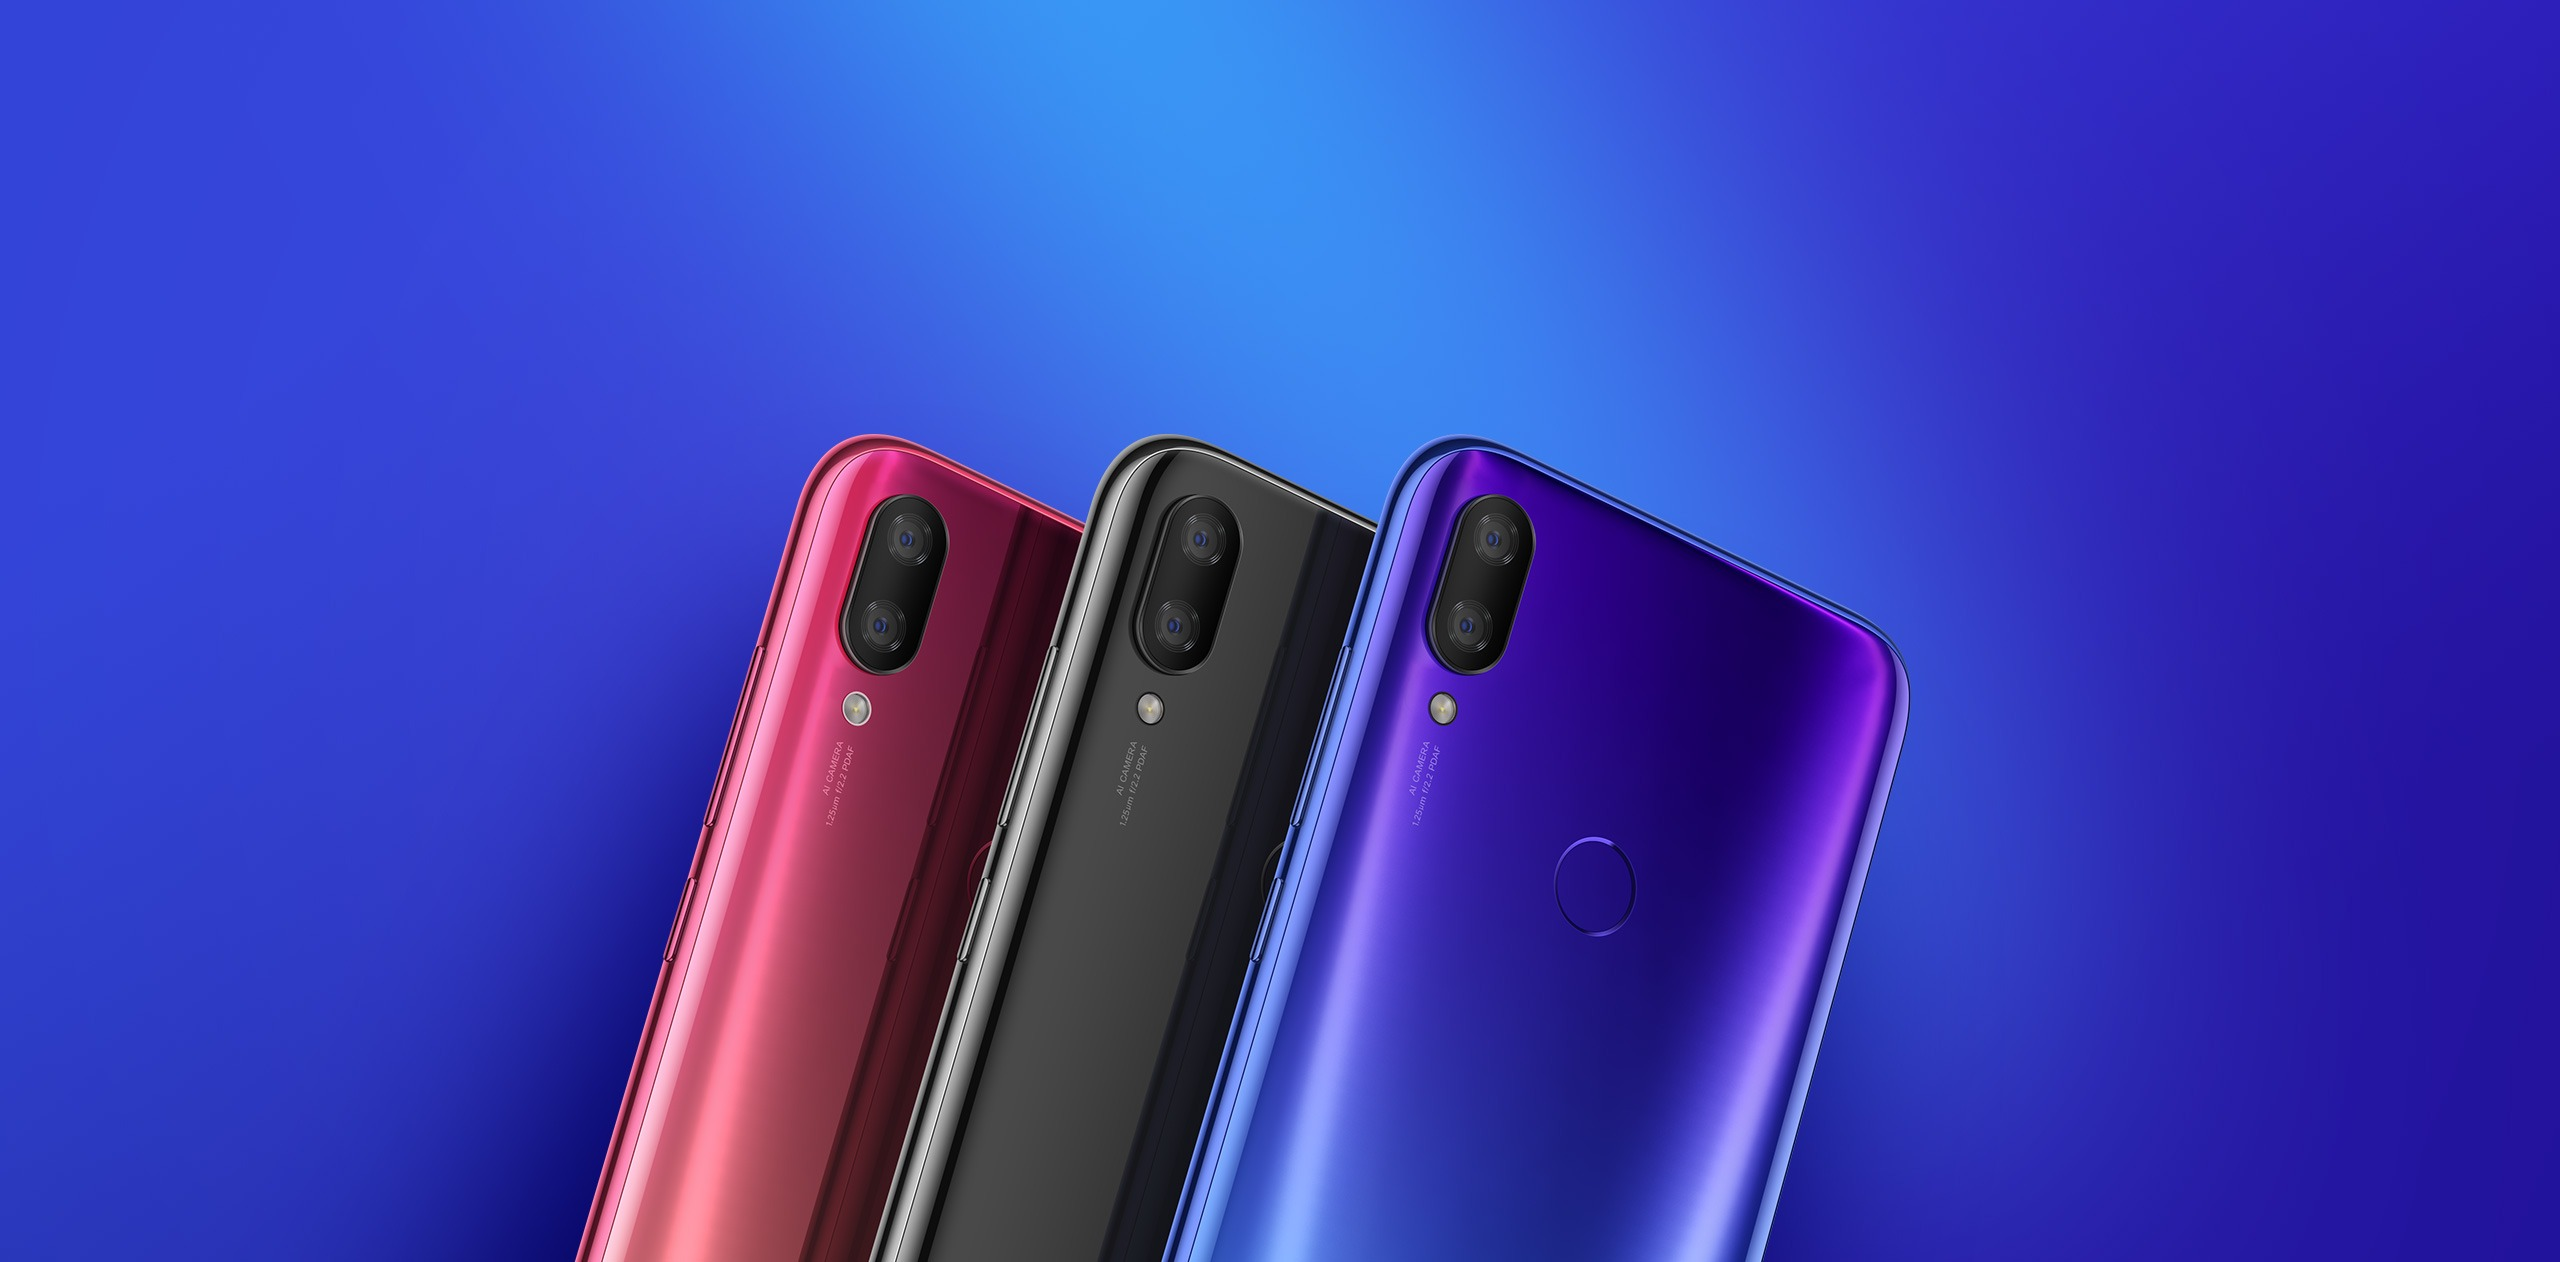 Xiaomi Mi Play launched with MediaTek Helio P35 at 1,099